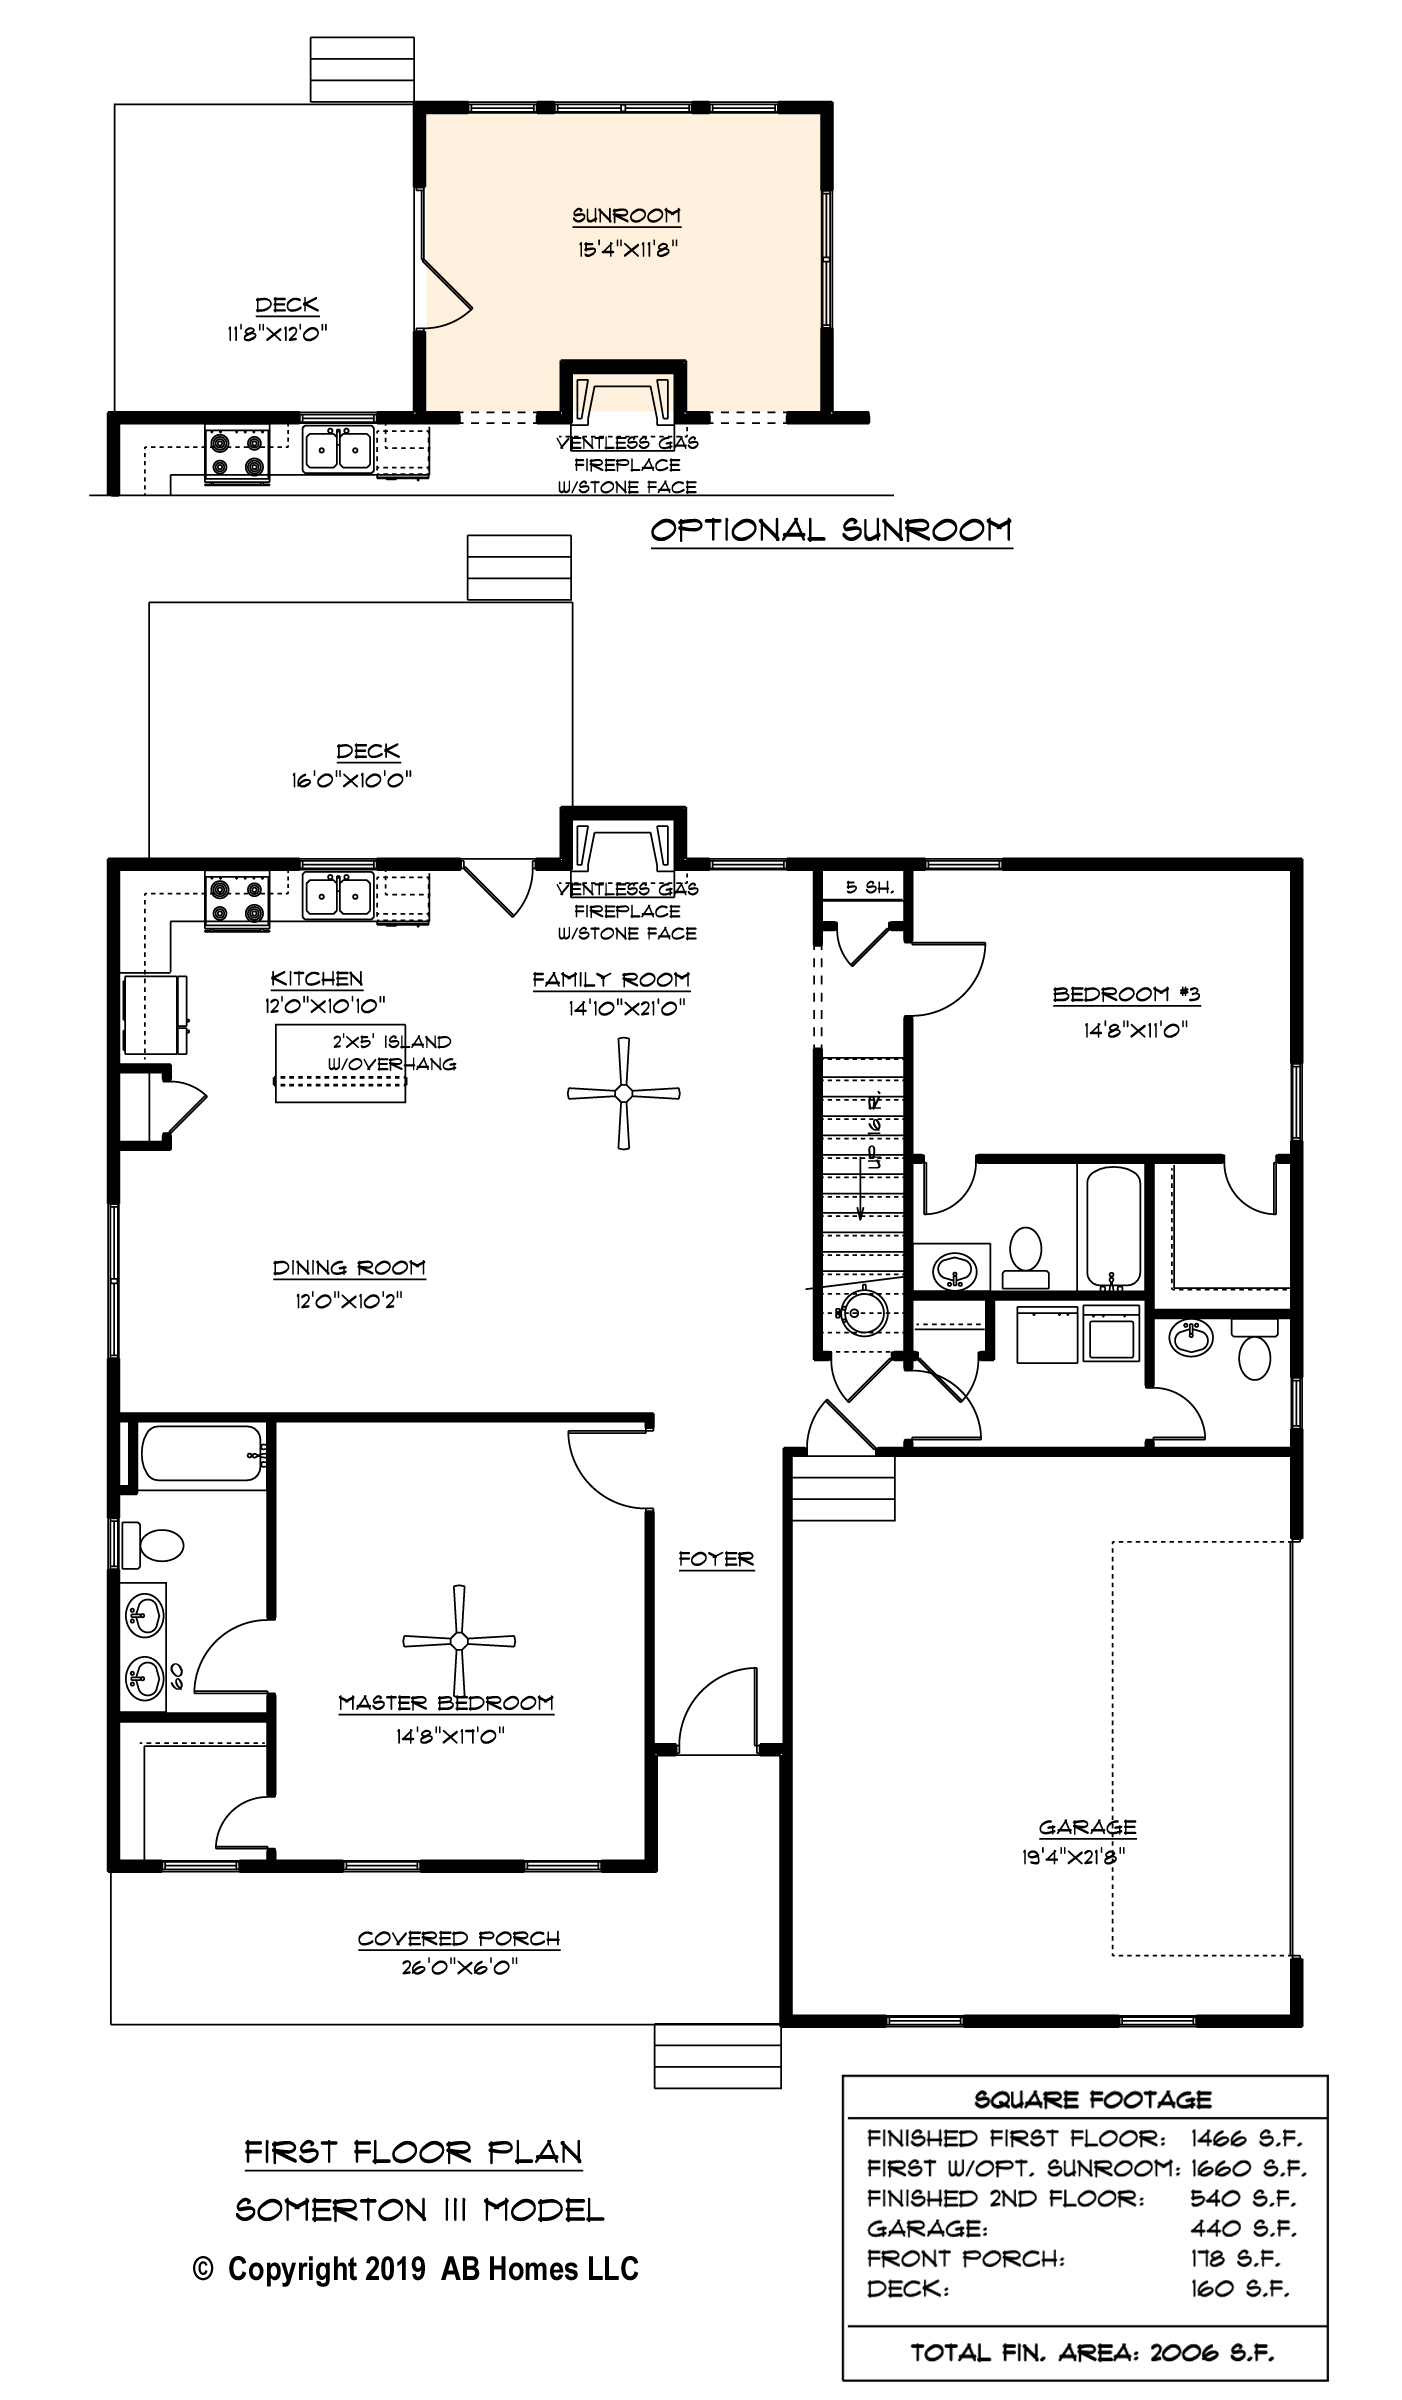 AB Homes The Somerton III 1st Floor Plan new home builder